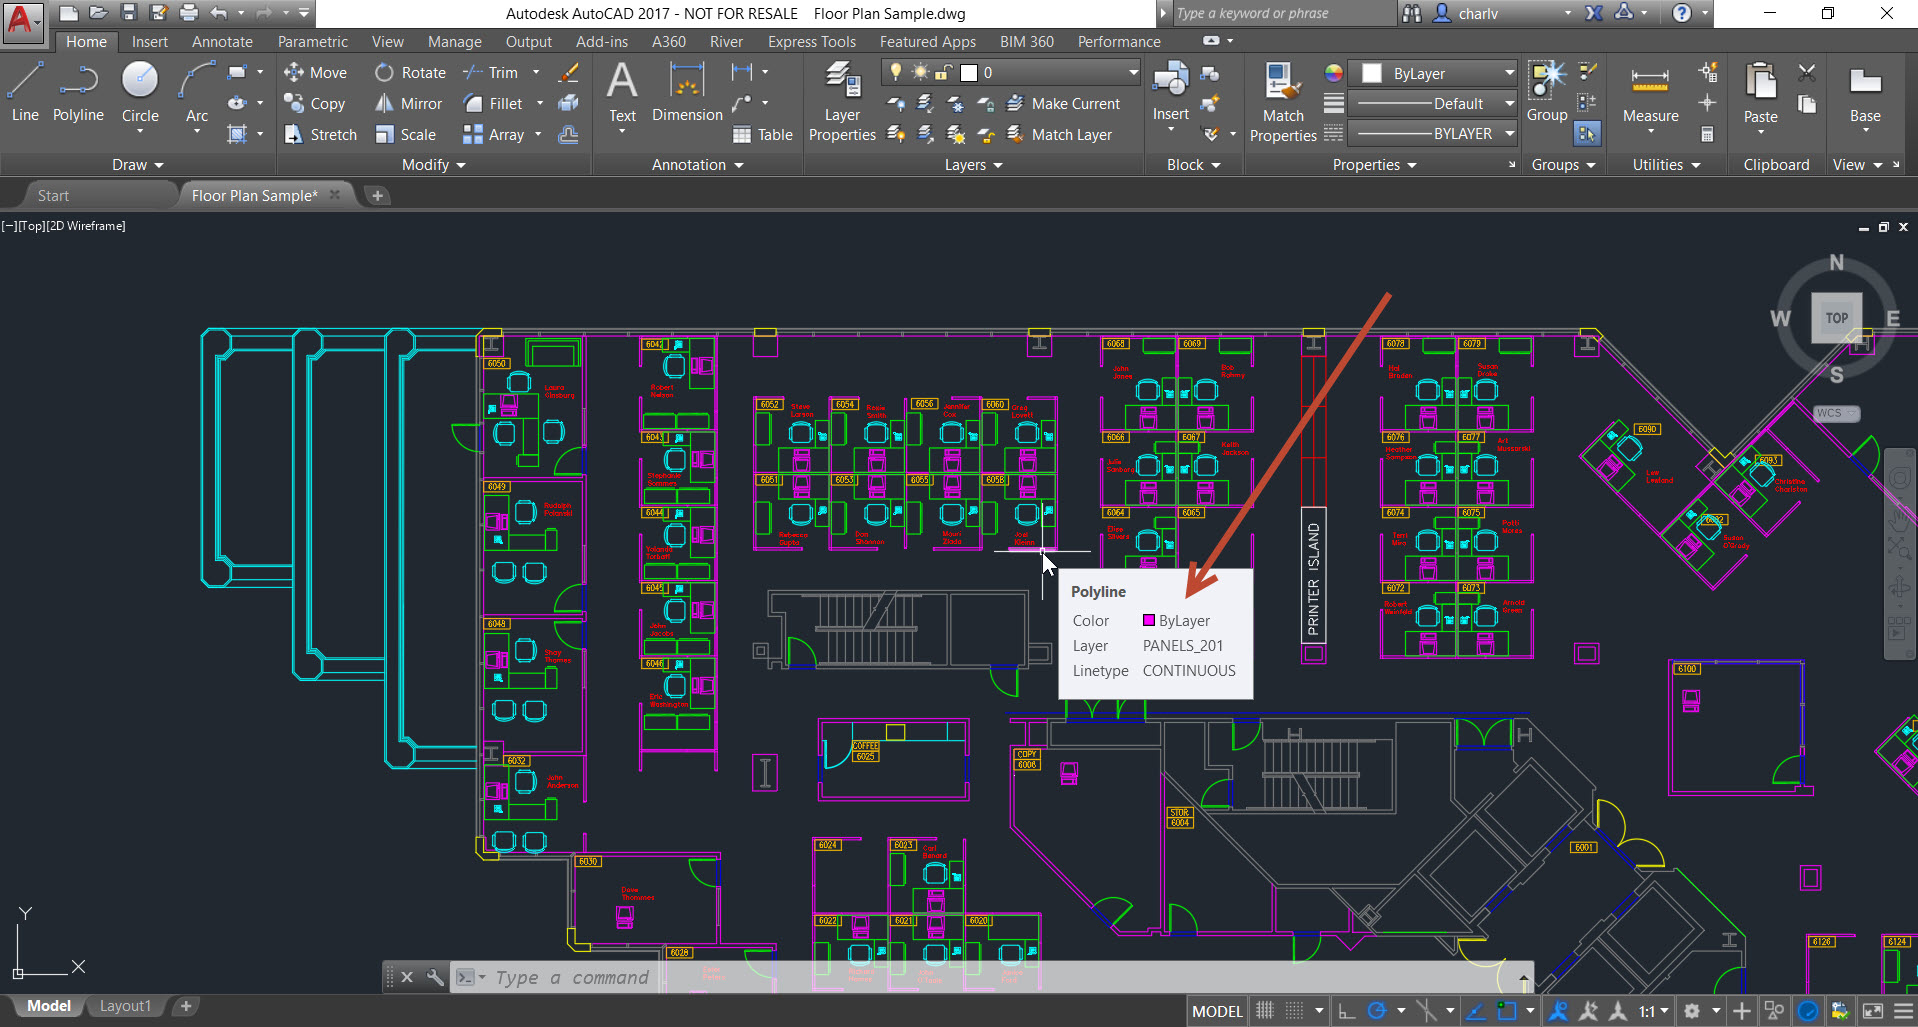 1-1 How to count lengths of objects in AutoCAD